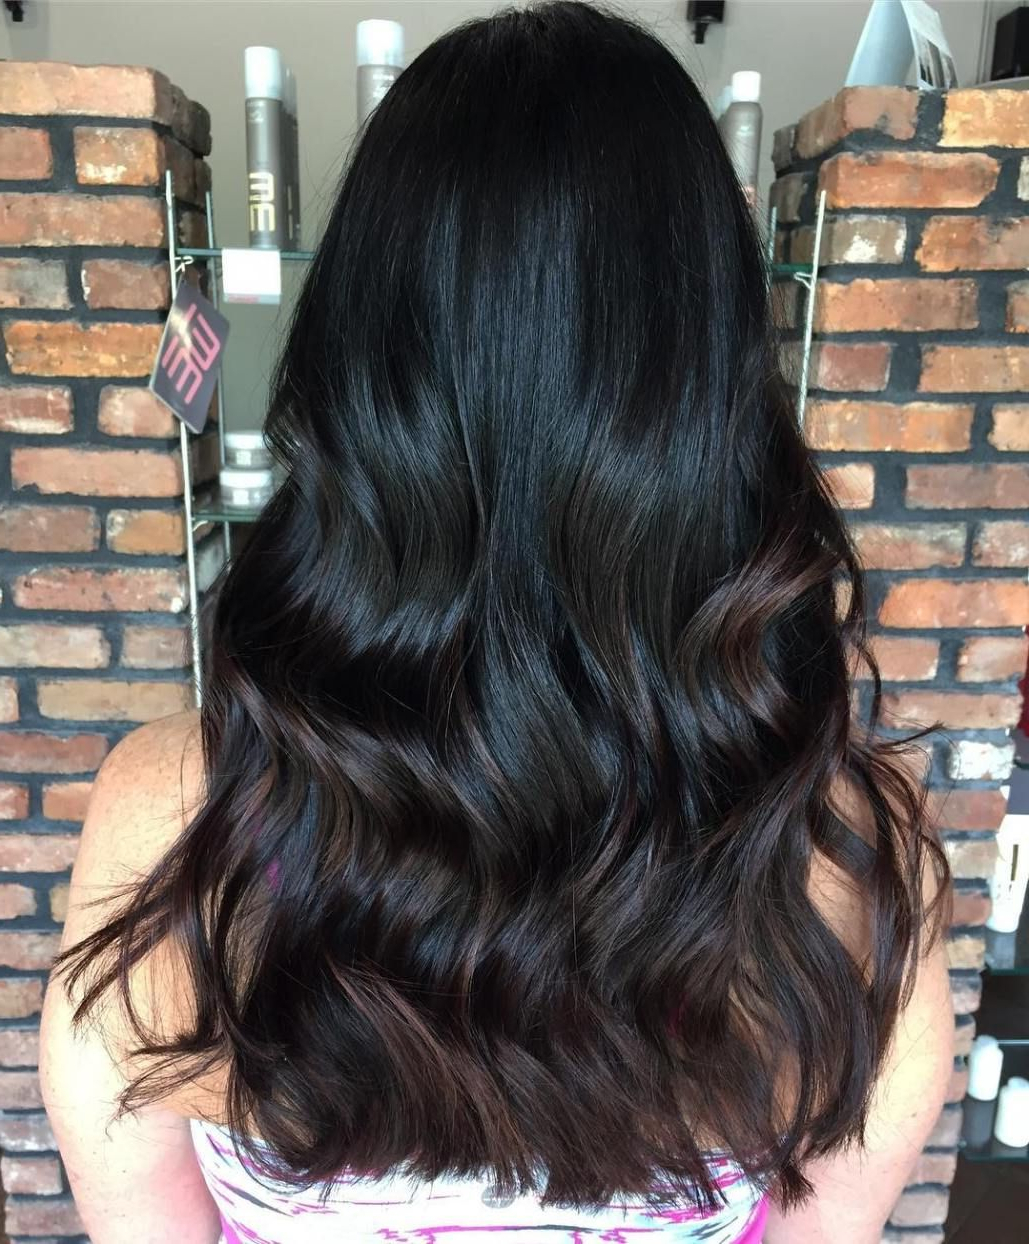 20 Jaw Dropping Partial Balayage Hairstyles In 2018   Hair Colors Intended For Curly Dark Brown Bob Hairstyles With Partial Balayage (View 5 of 25)